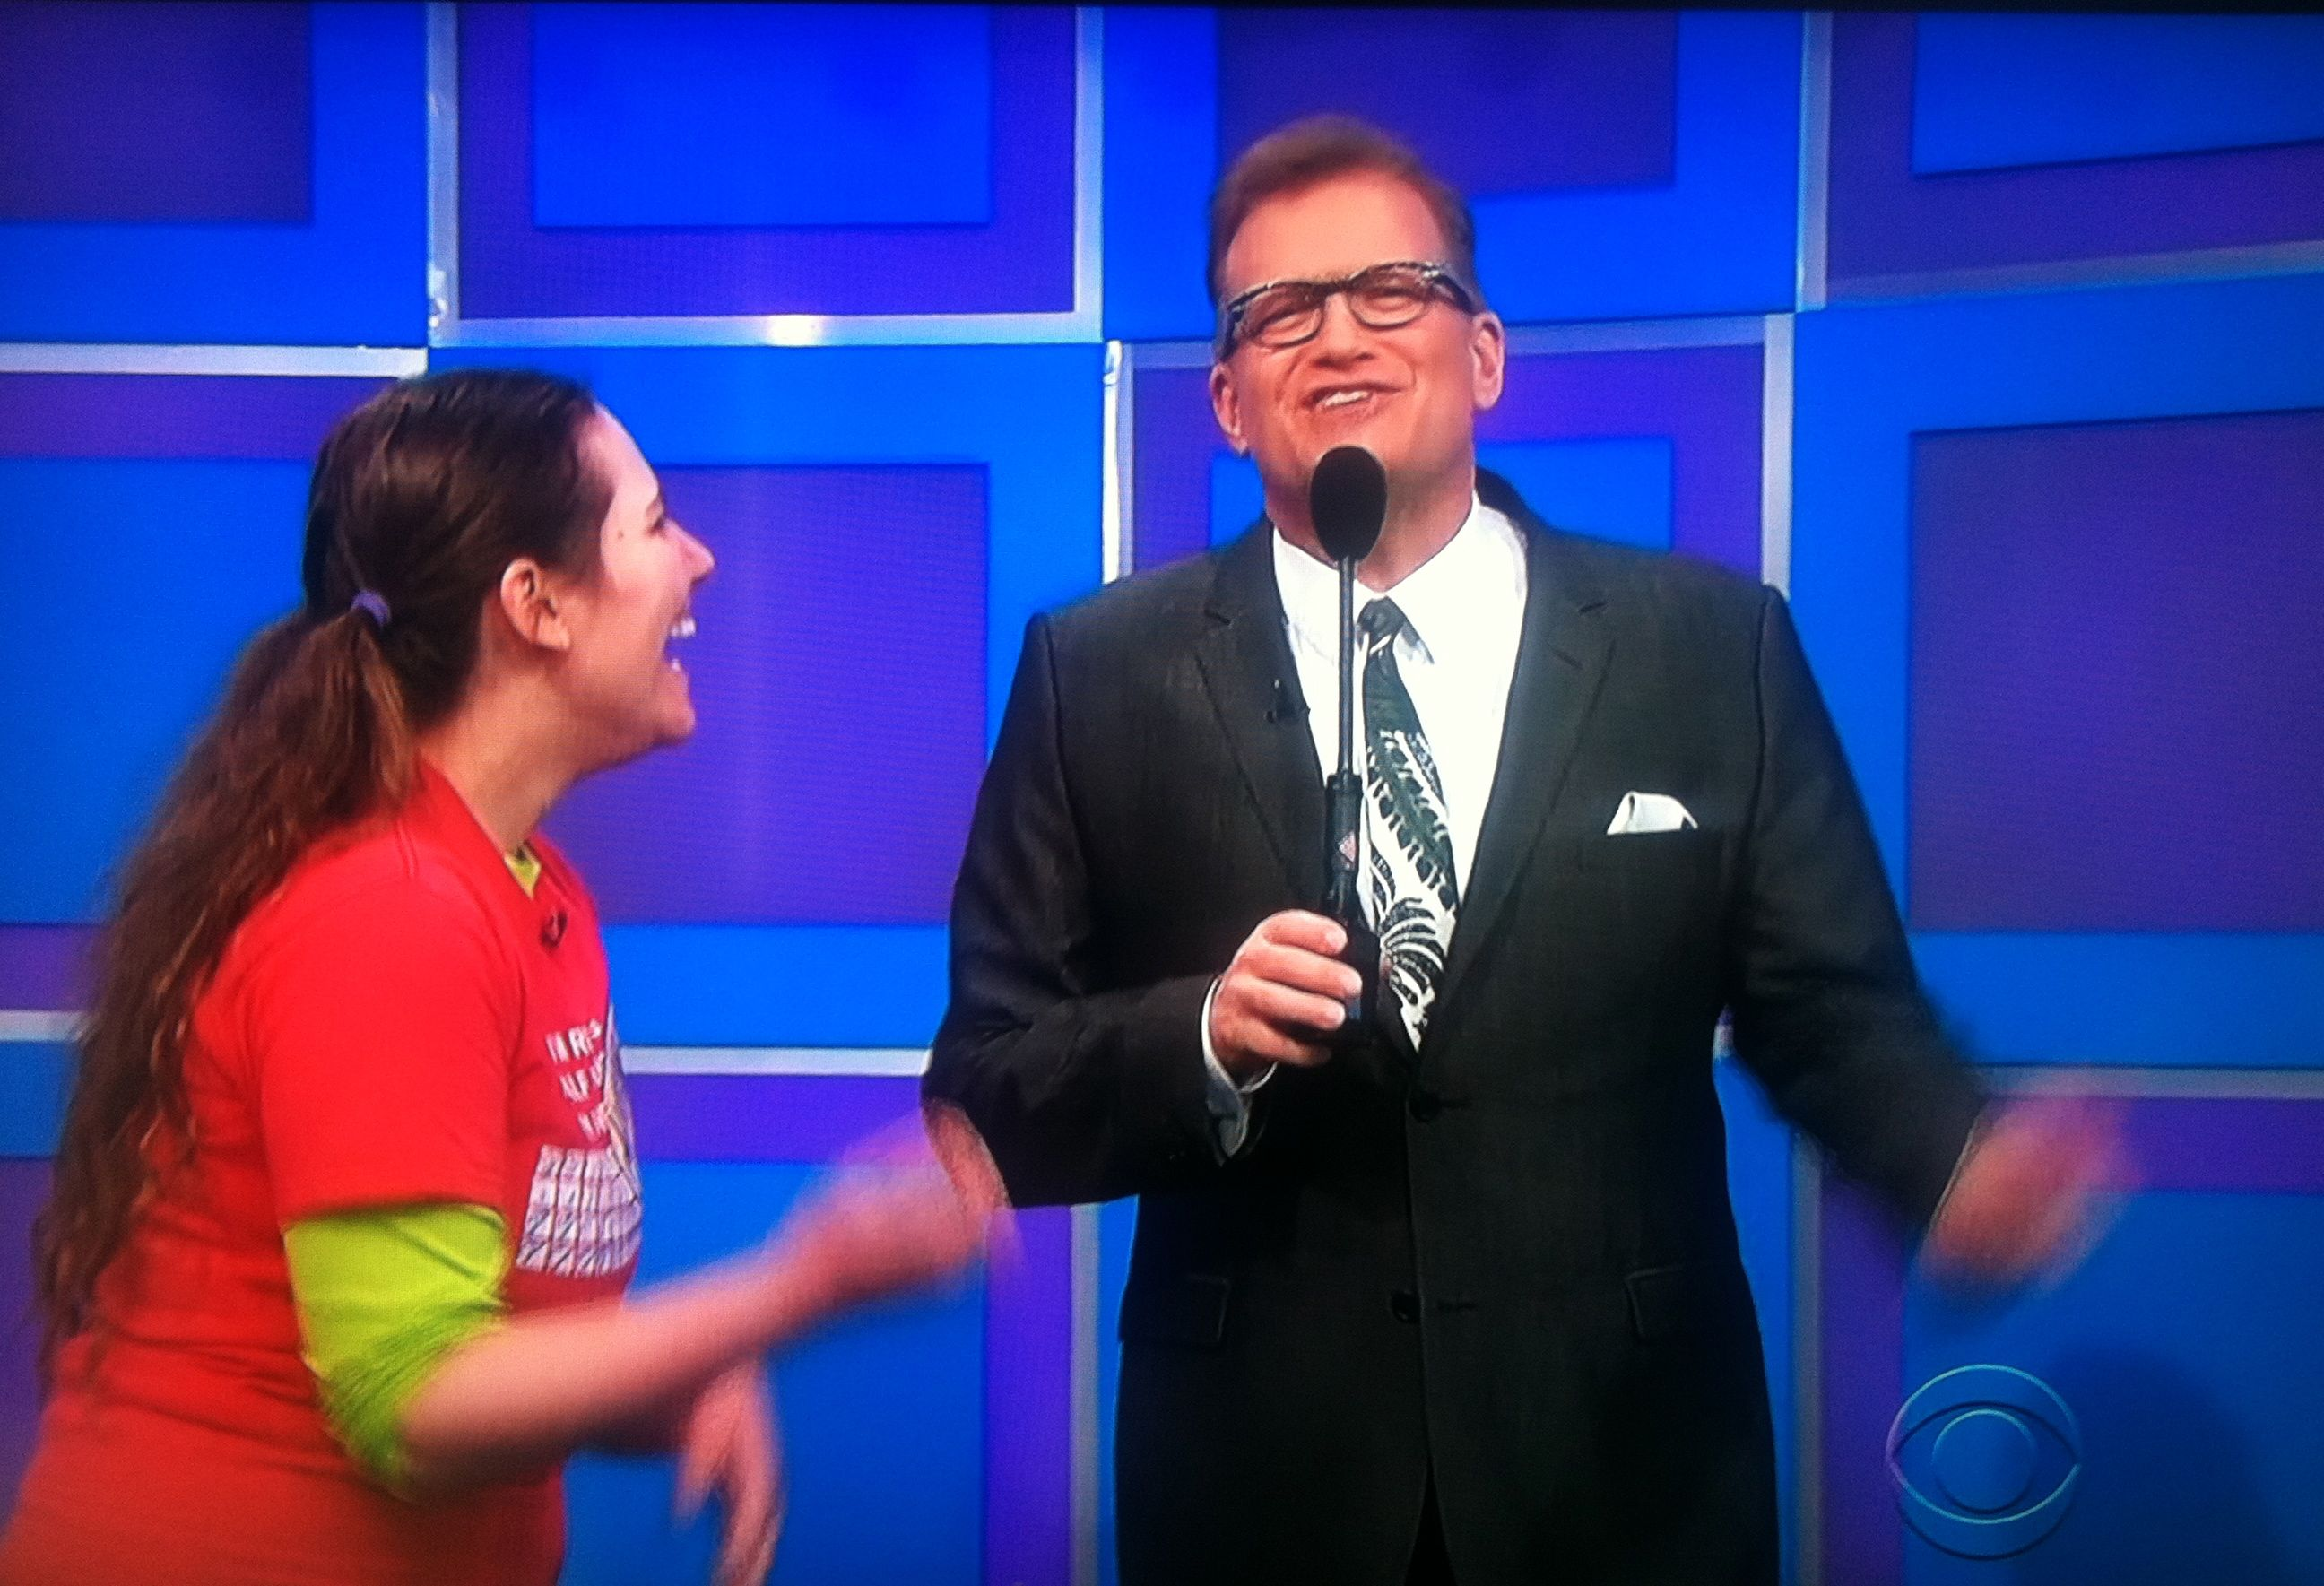 Drew Carey lightly making fun of Aurora De Lucia on The Price is Right - and her loving every second of it